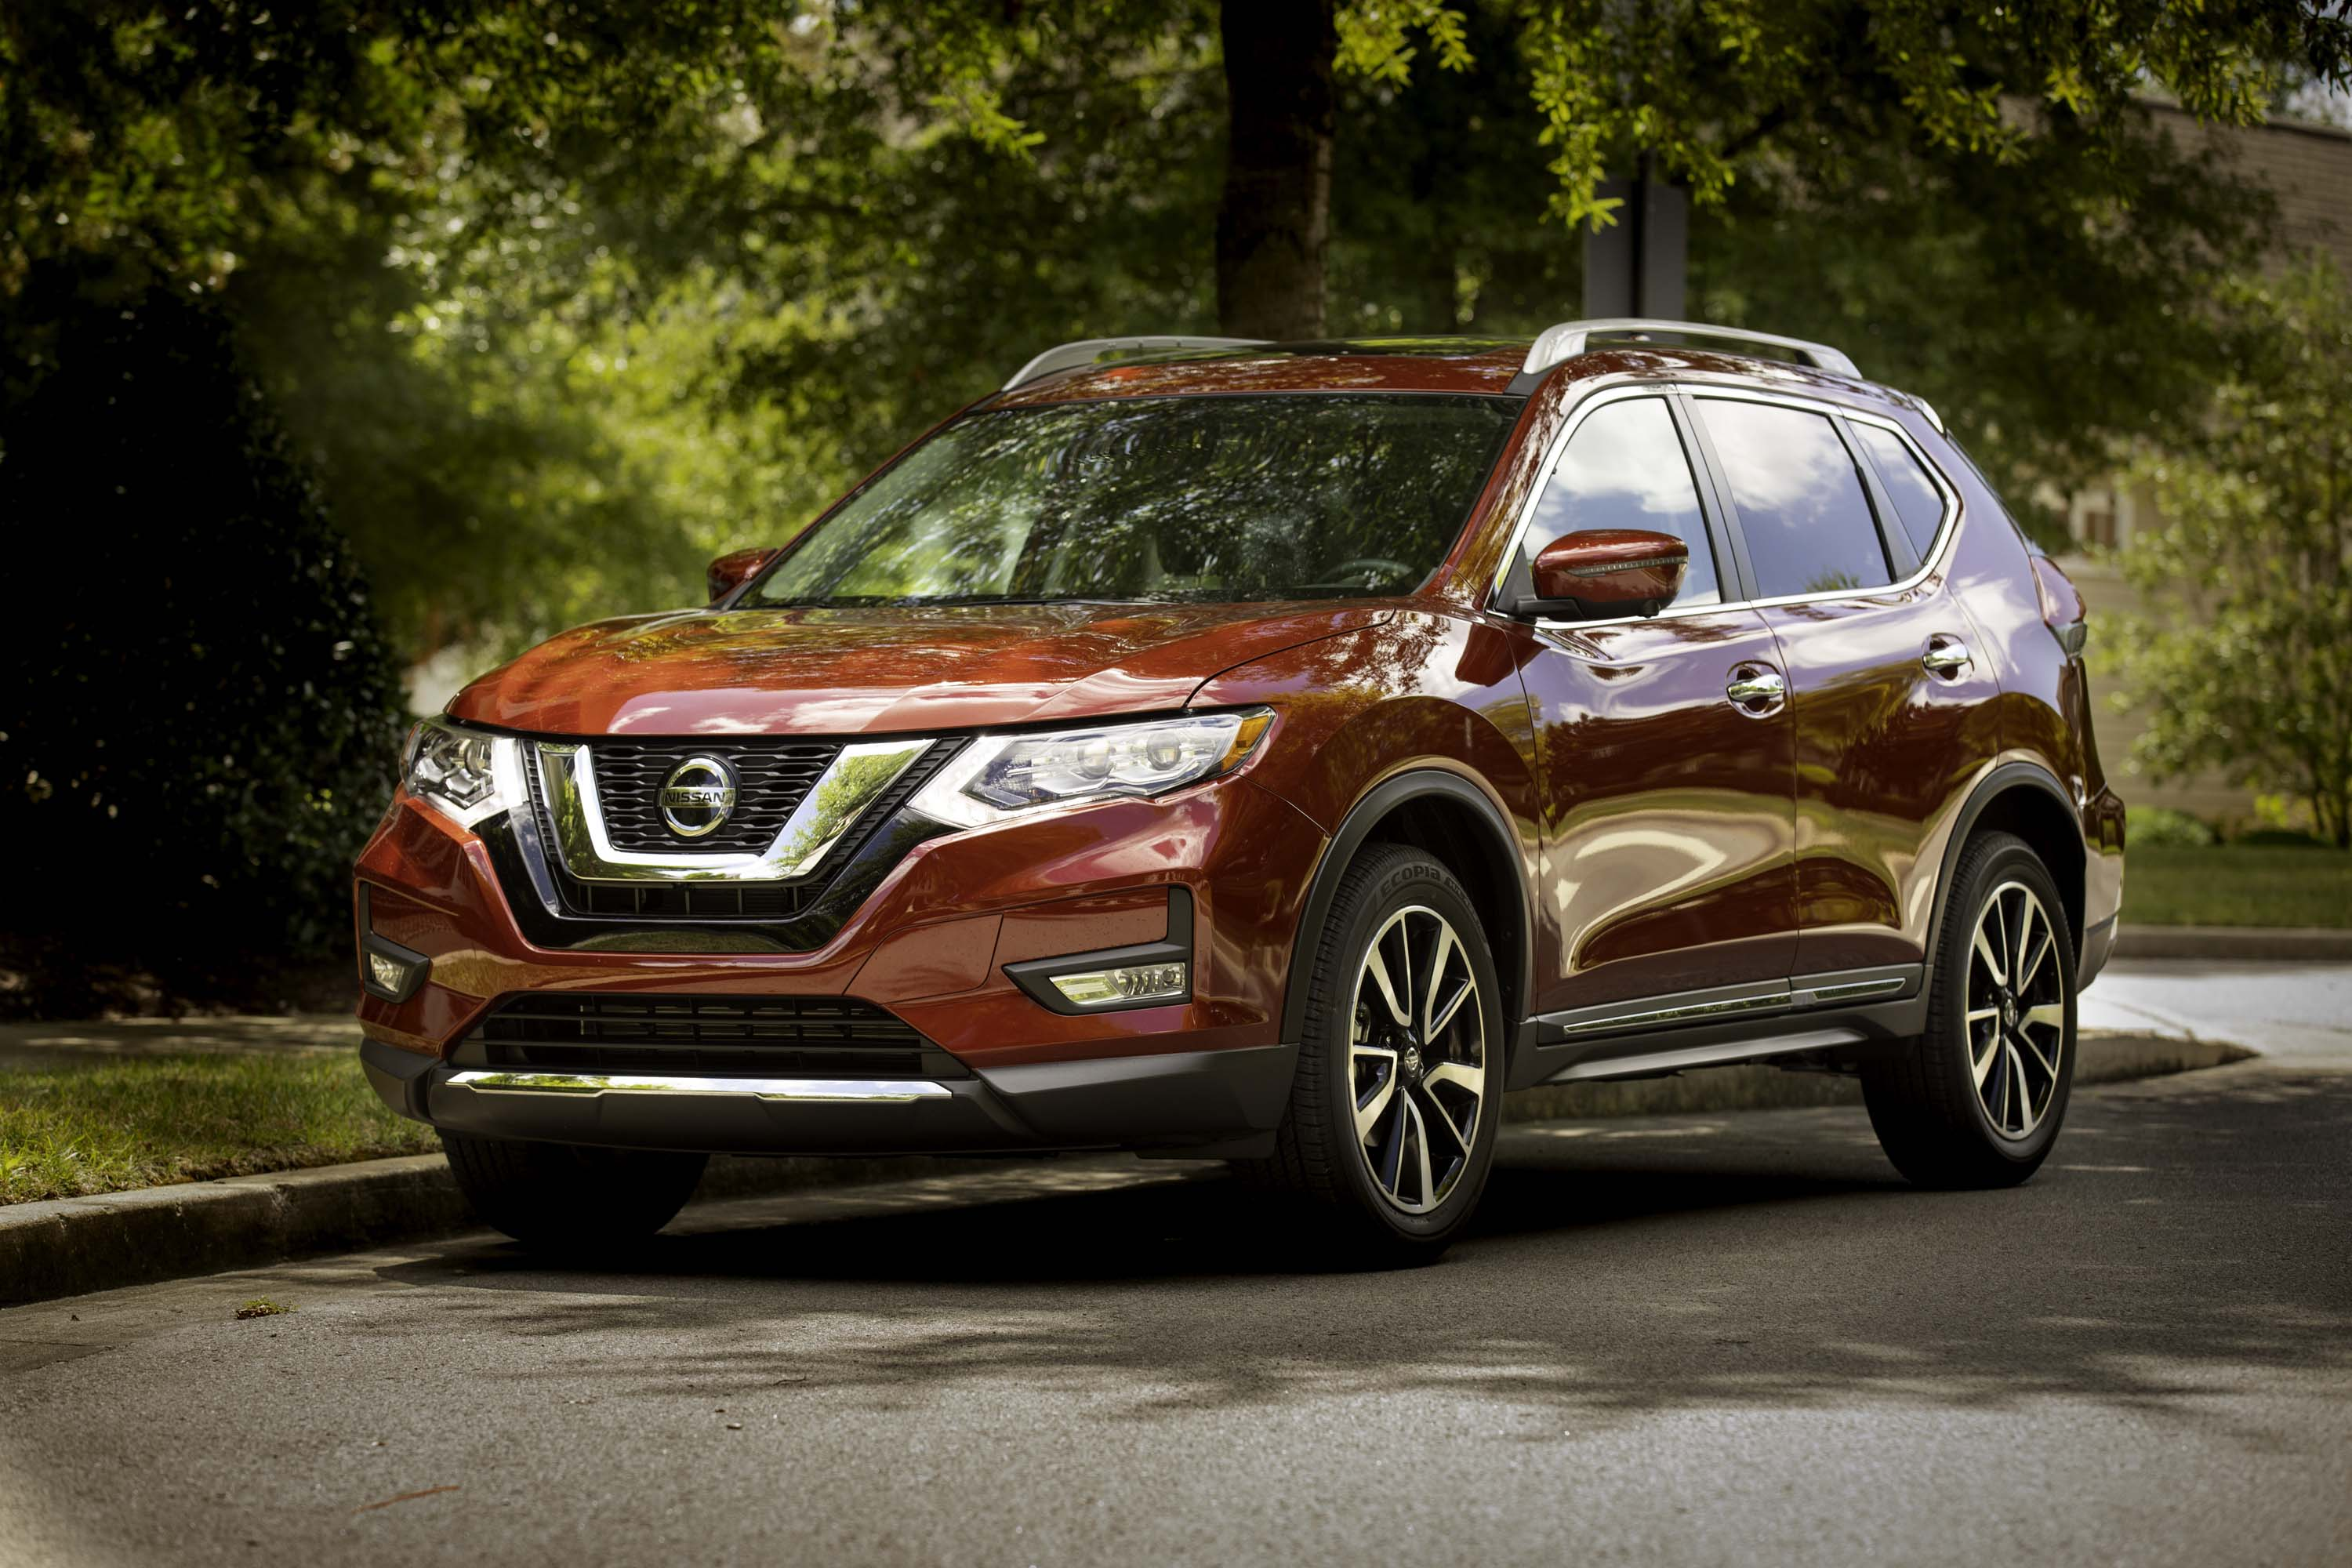 Every 2019 Rogue features NissanConnectSM featuring Apple CarPlay™ and Android Auto™, with a 7.0-inch color touch-screen display. Rogue exterior highlights include body-color heated outside mirrors with available integrated turn signals, a rear spoiler, privacy glass and roof rails.